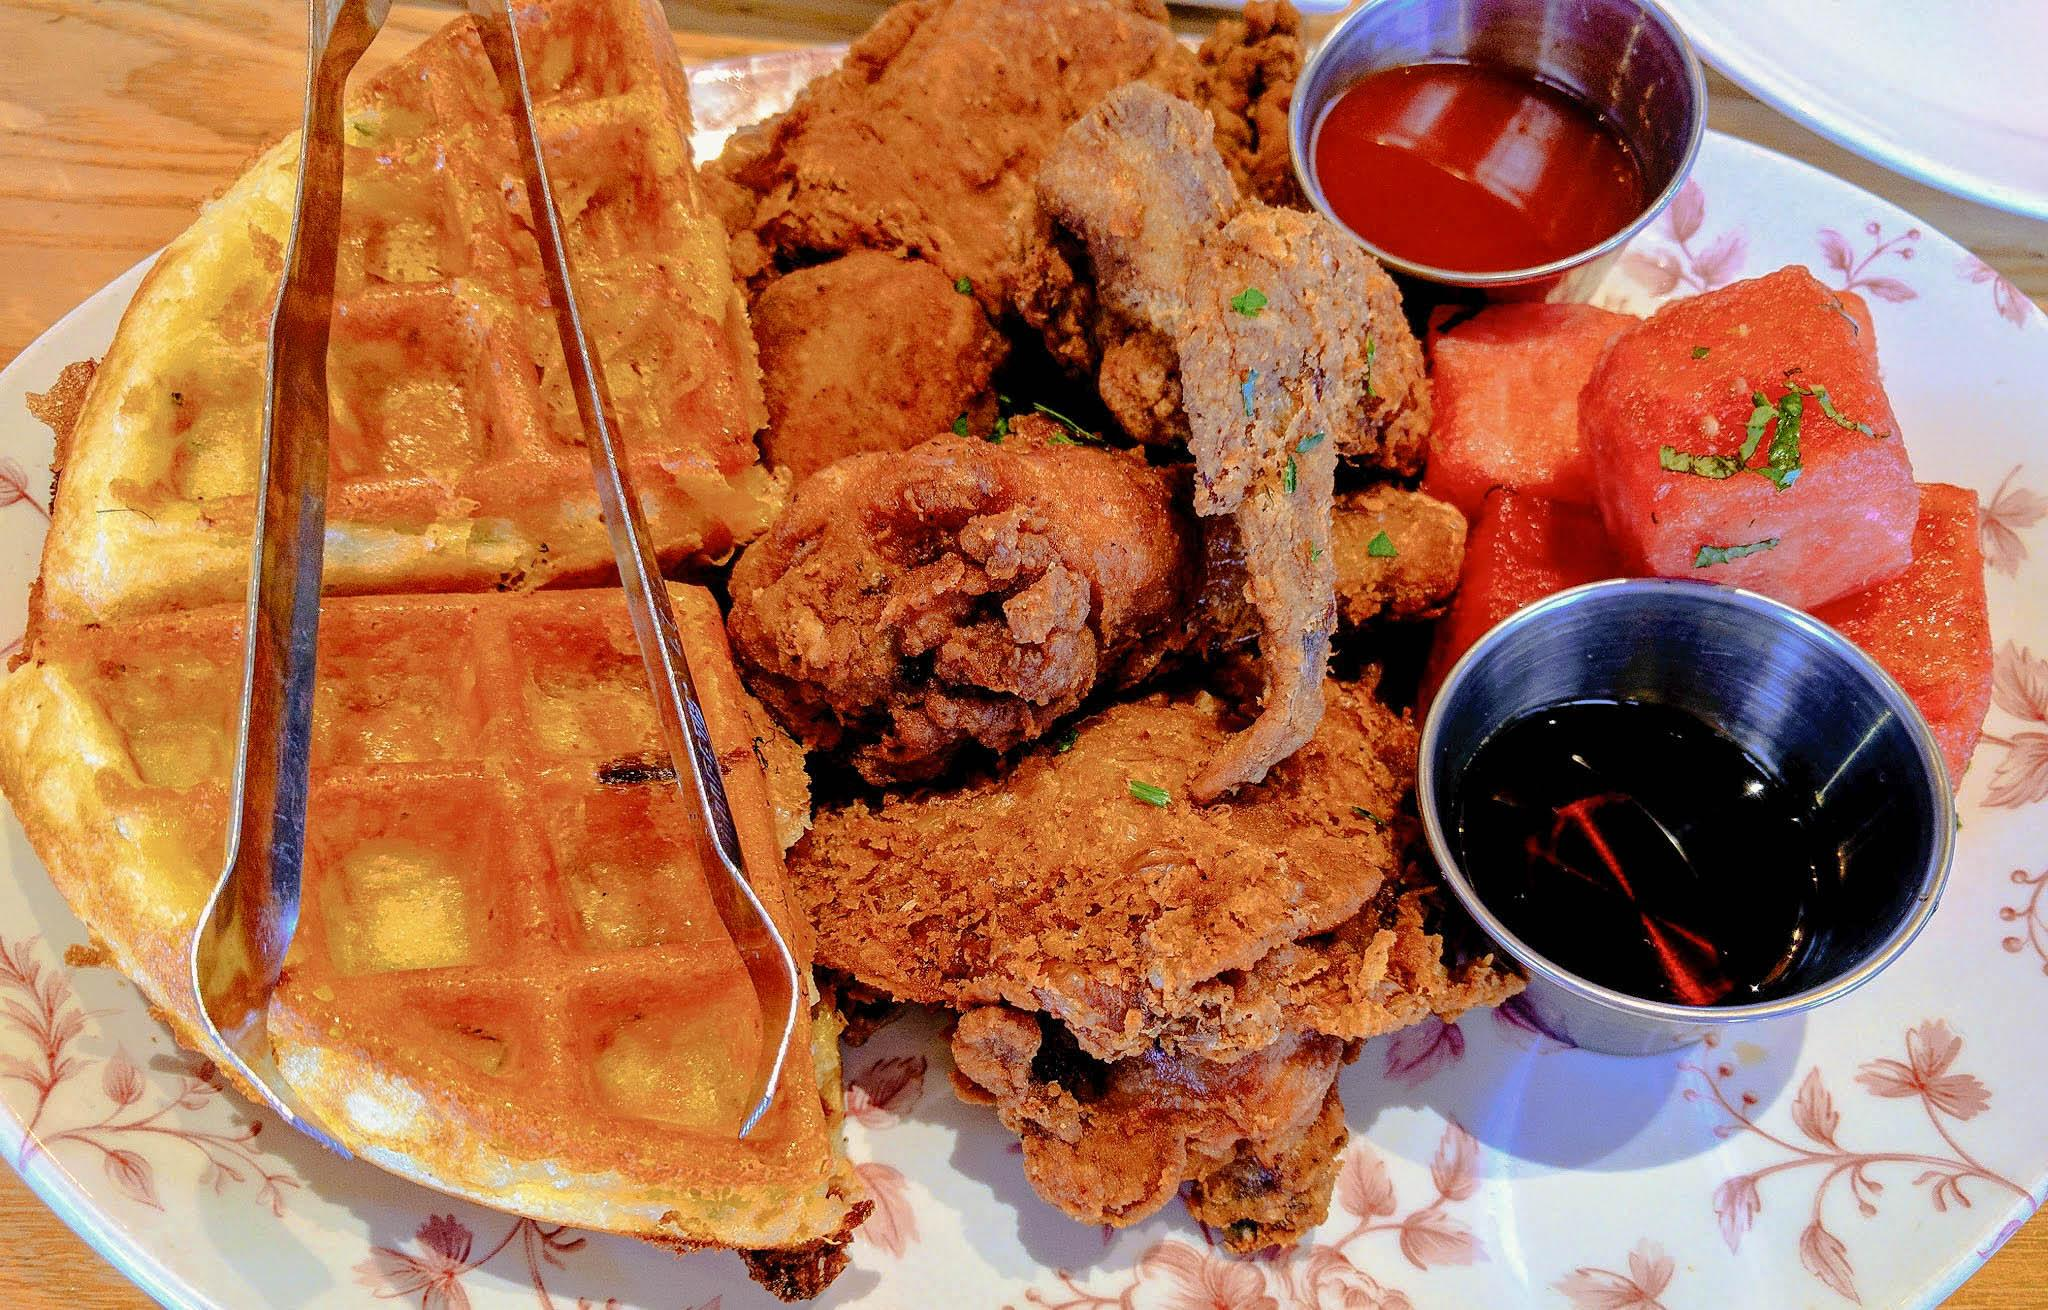 Yardbird Southern Kitchen and Bar Fried Chicken and Waffles